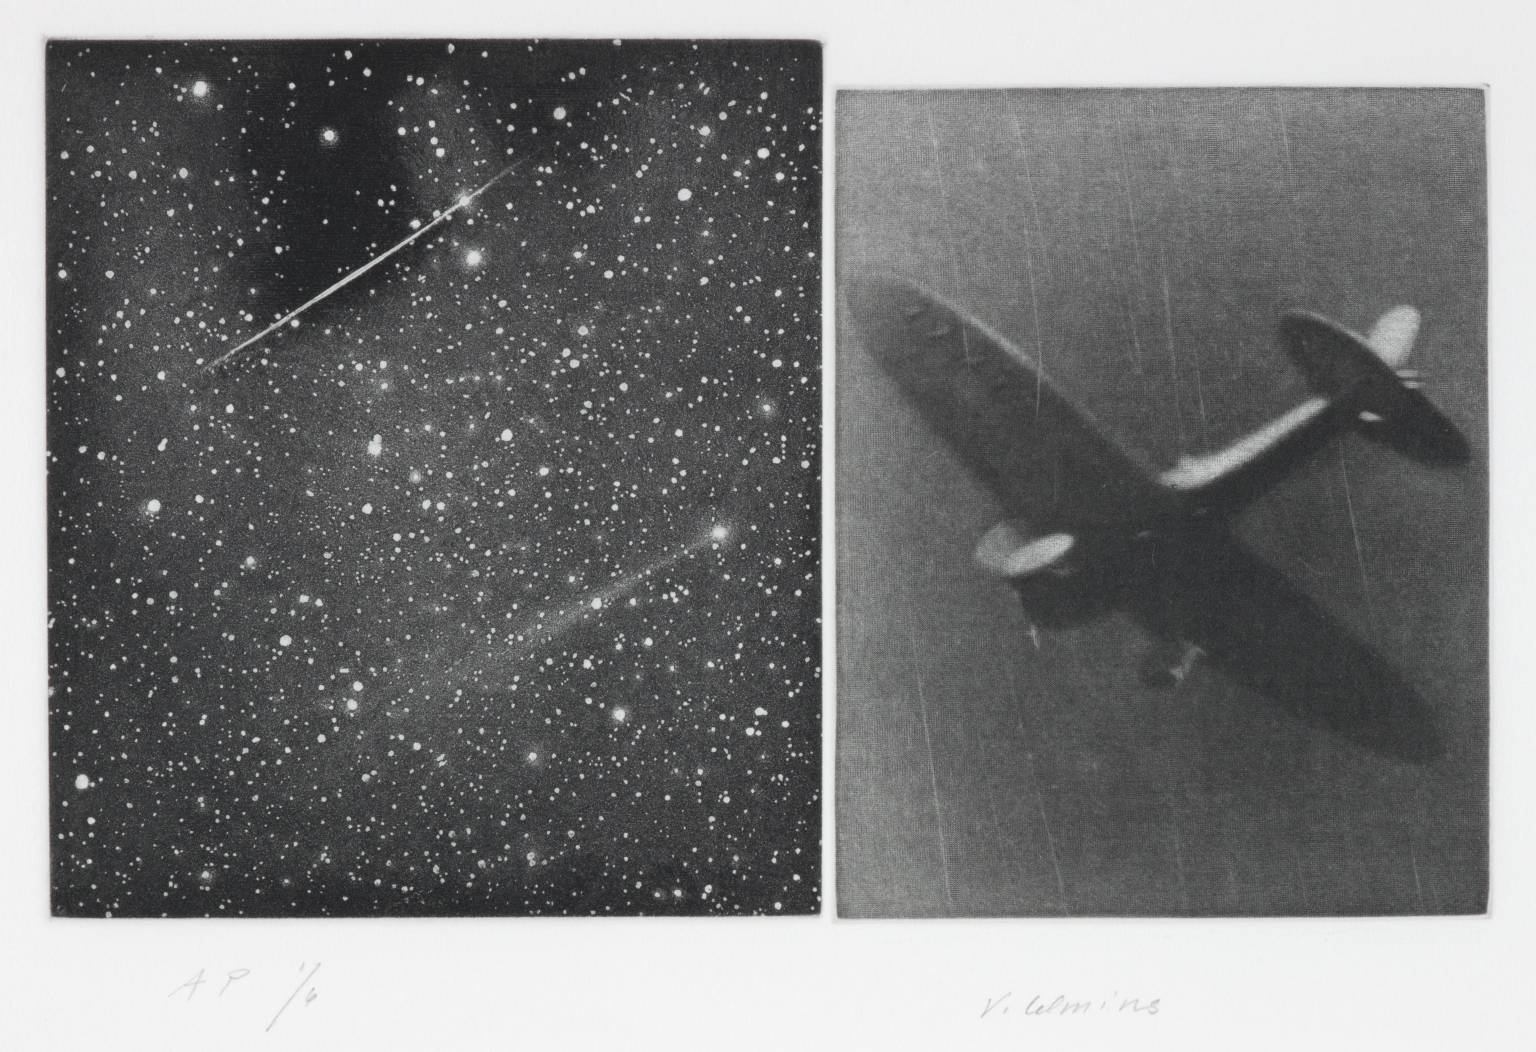 Concentric Bearings B 1984 by Vija Celmins born 1938